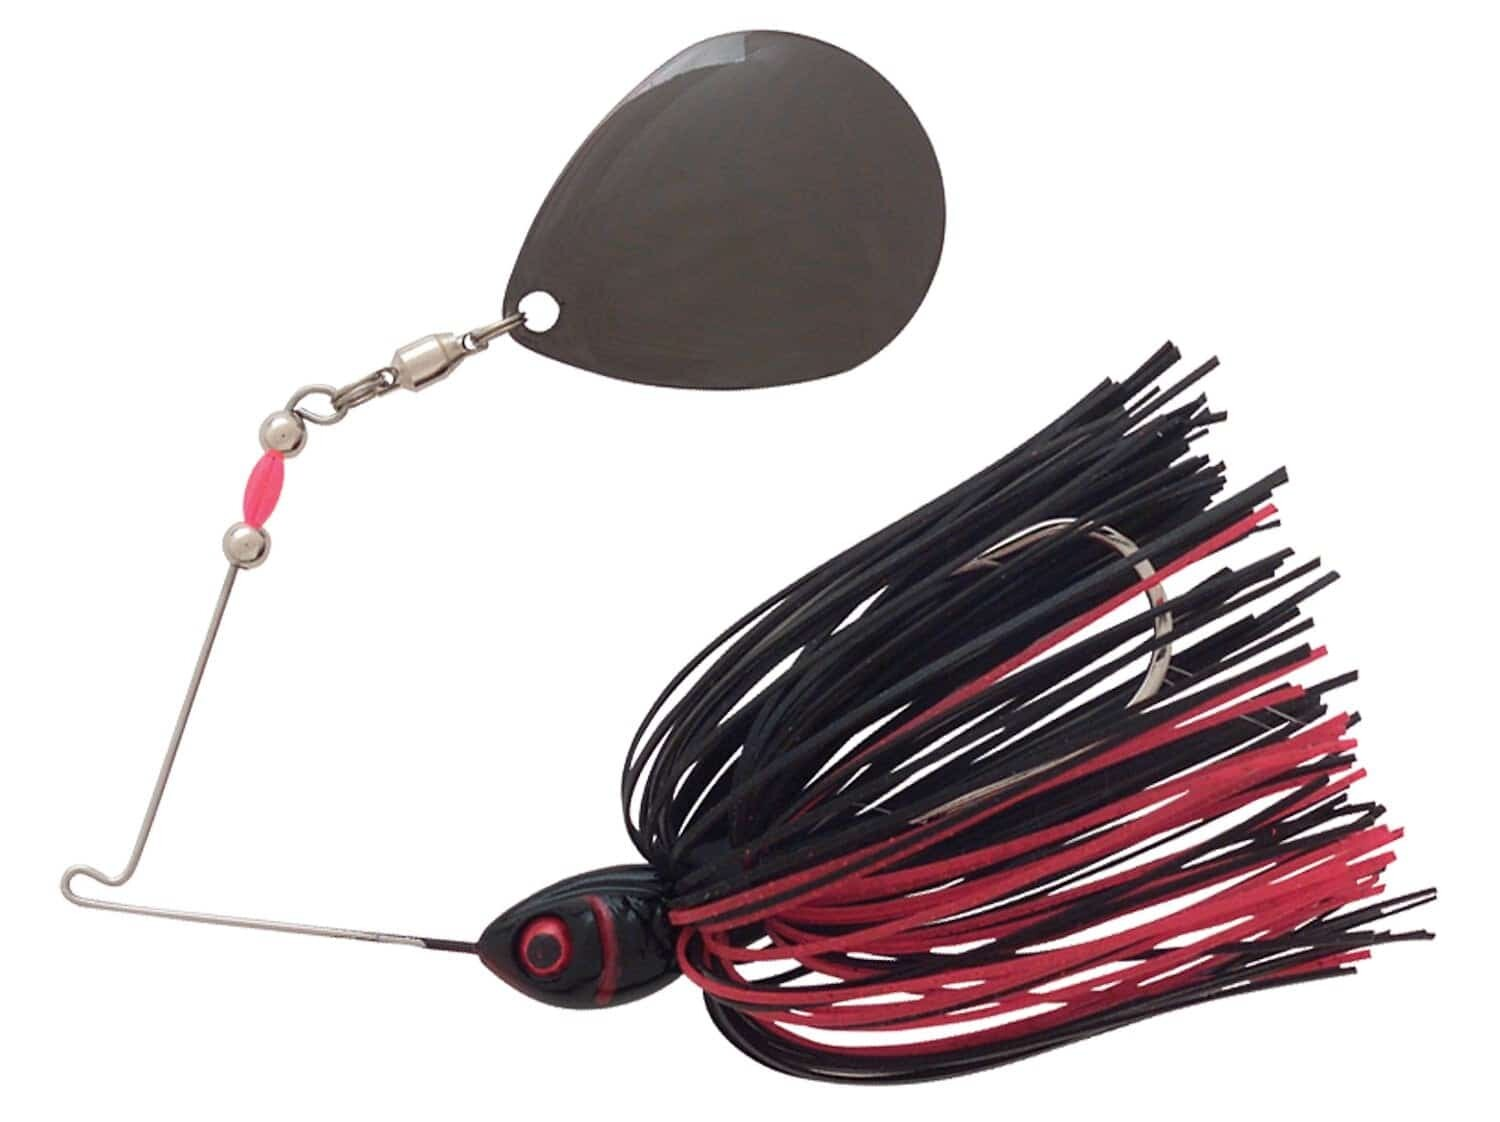 Booyah Moontalker Spinnerbait